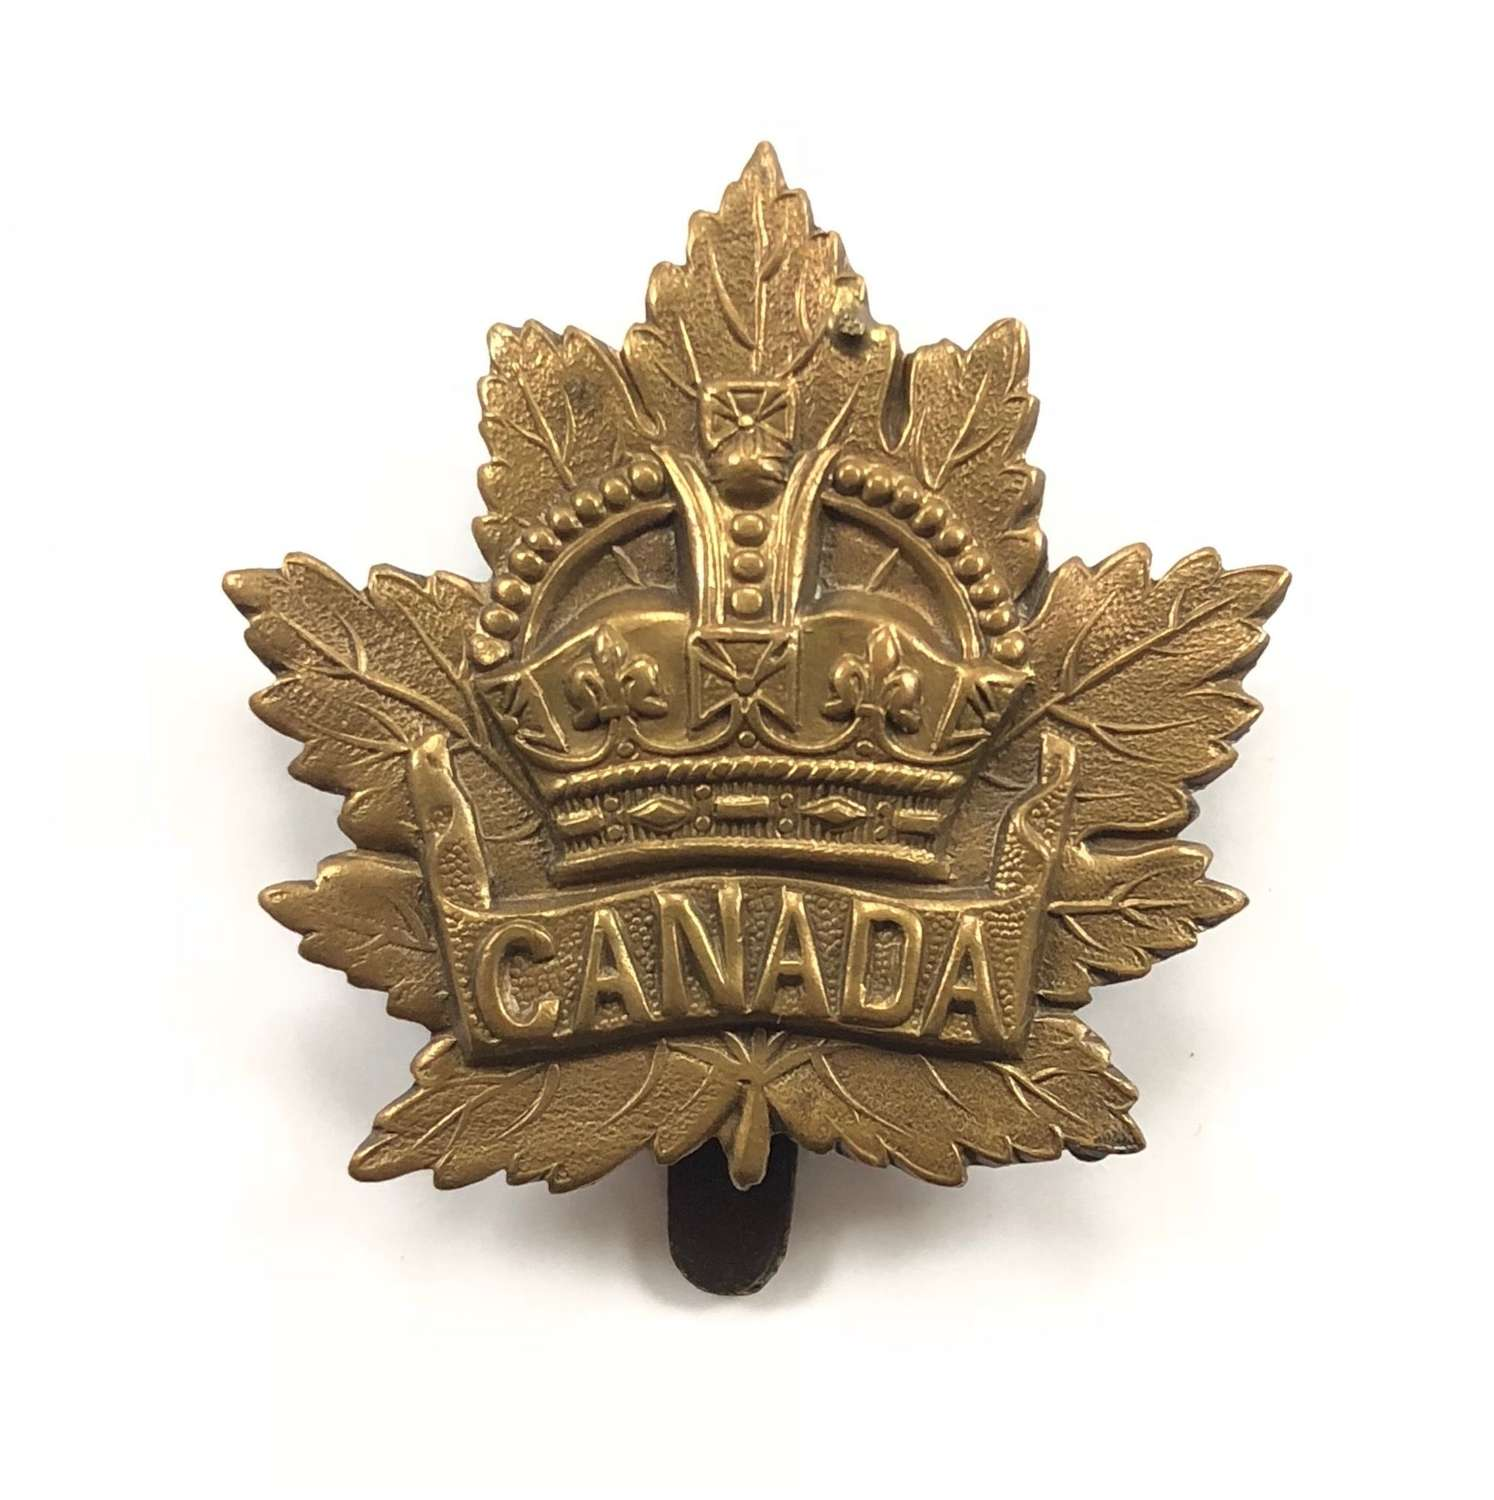 WW1 Period Canadian Cap Badge British Made.